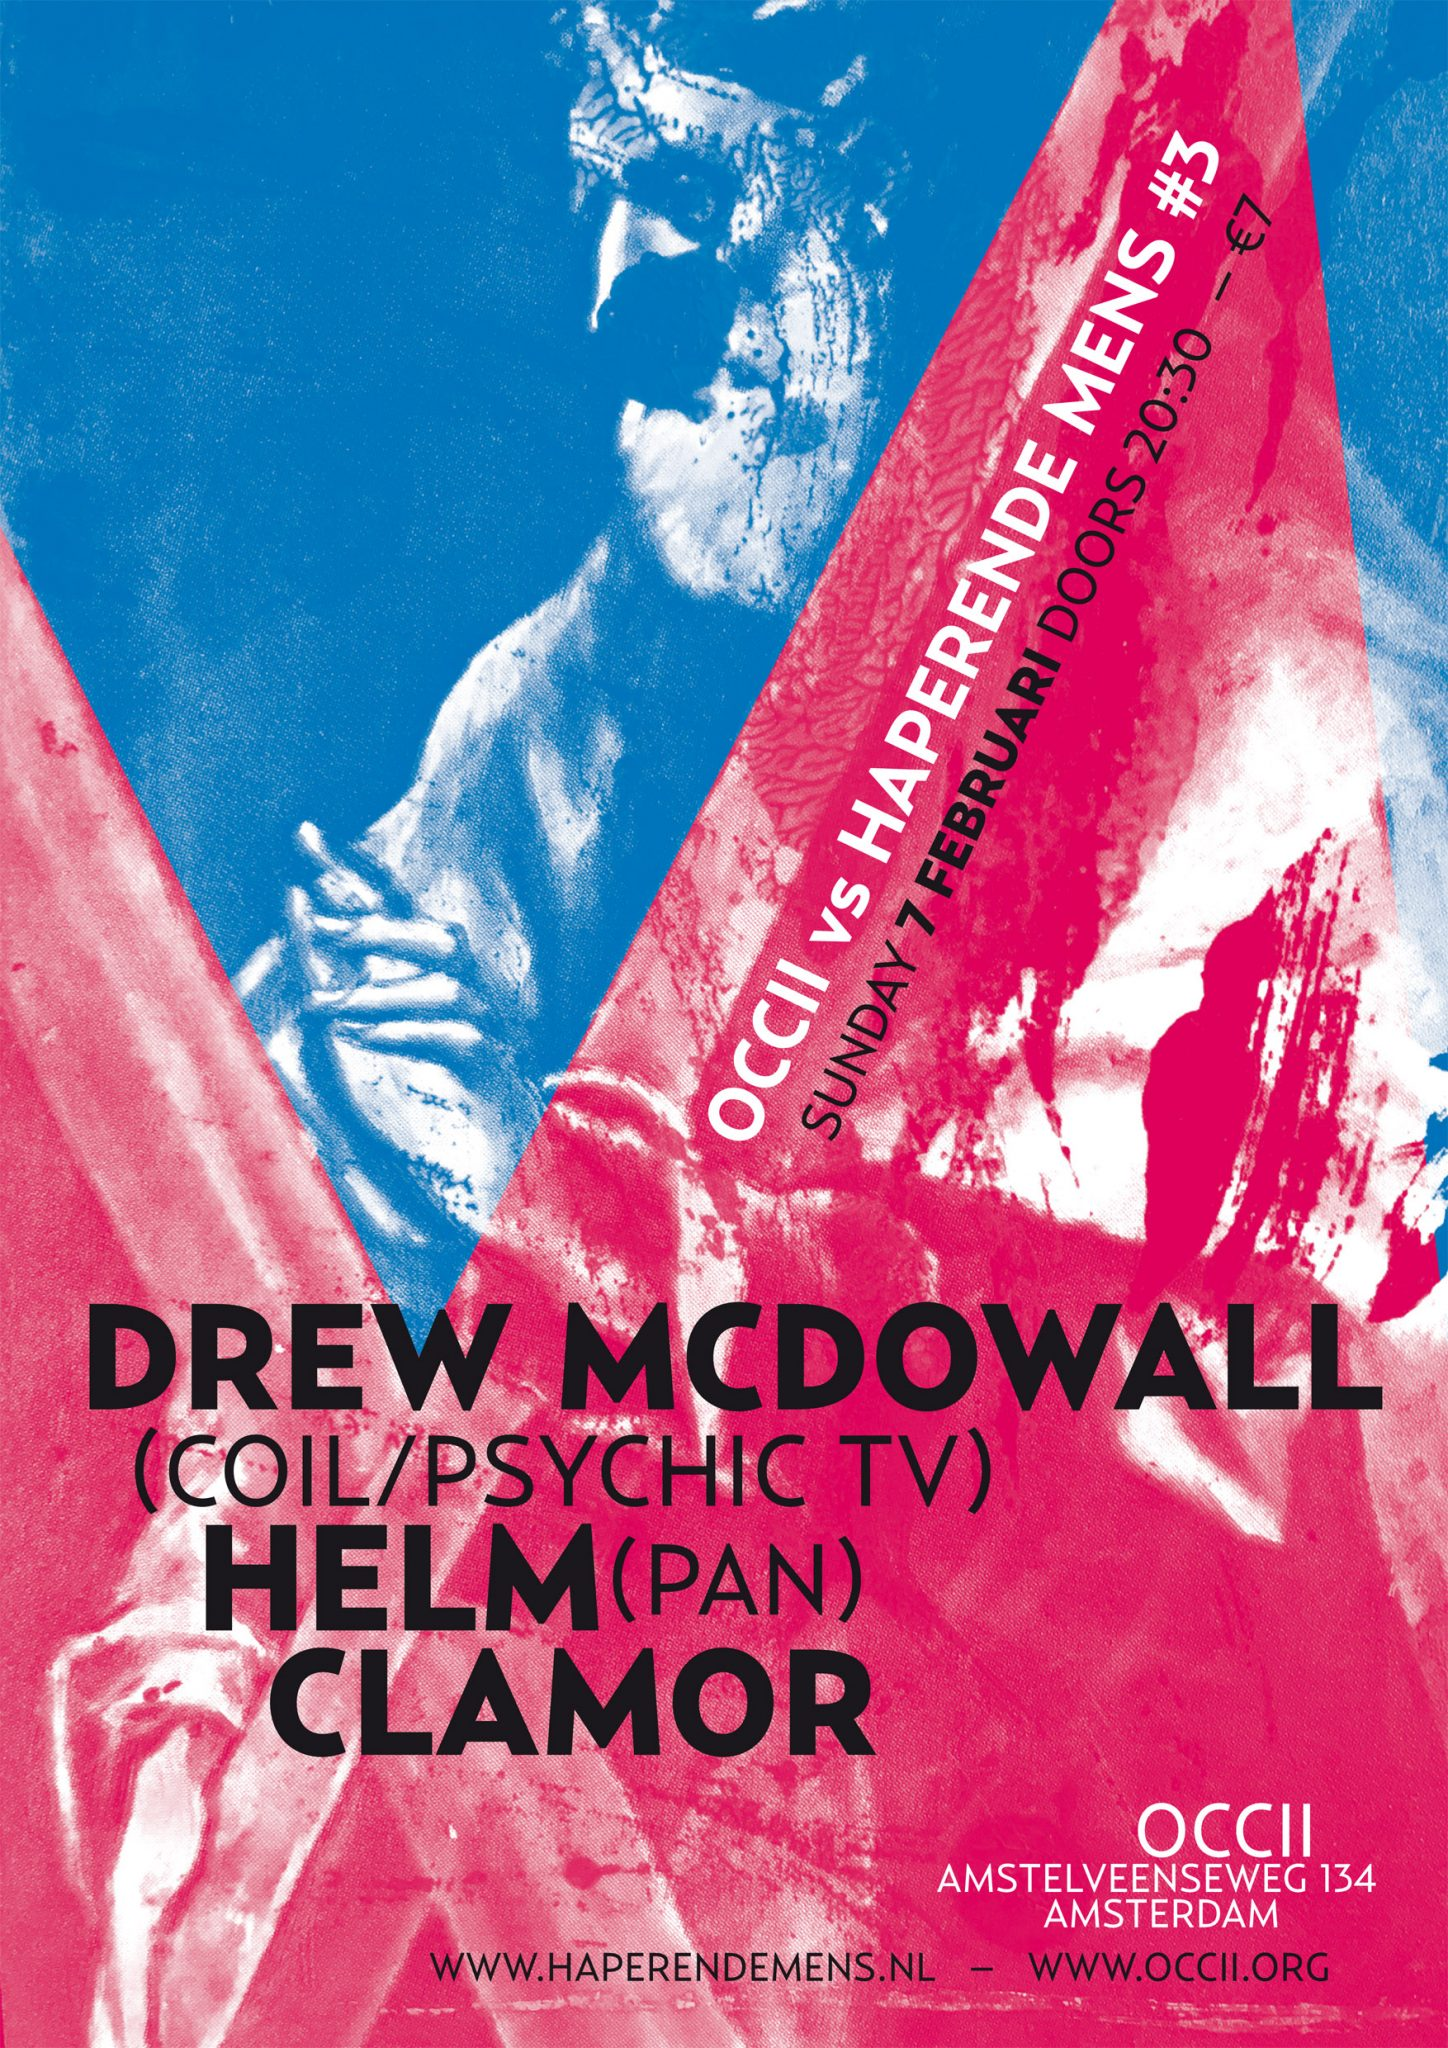 HAPERENDE MENS SERIES #3 w/ DREW McDOWALL (Coil/Psychic TV) + HELM (uk) + CLAMOR